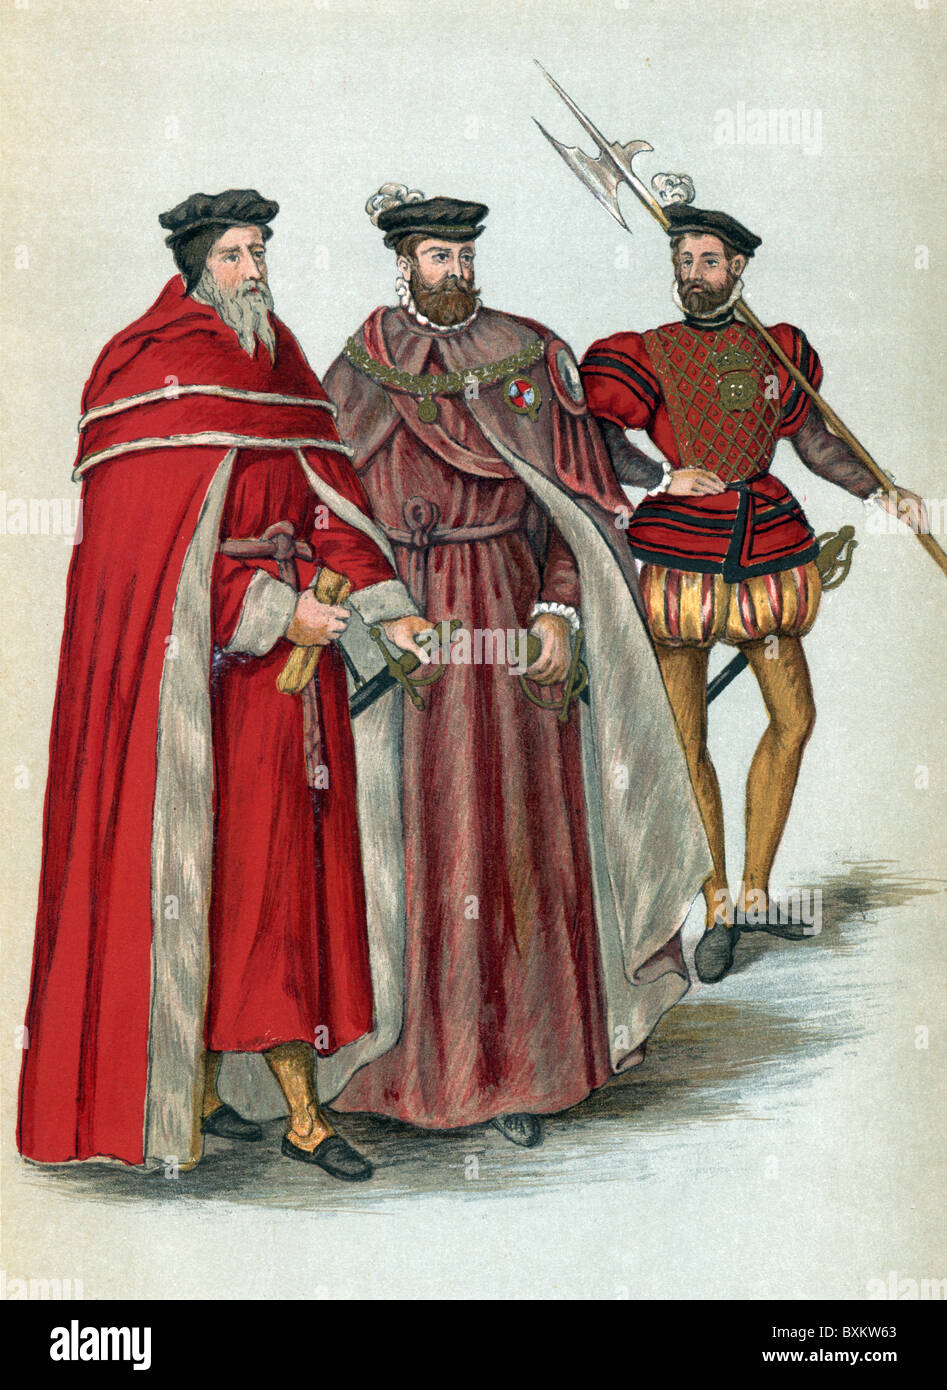 Two Peers in their Robes and a Halberdier, 16th century England; Black and White Illustration; - Stock Image